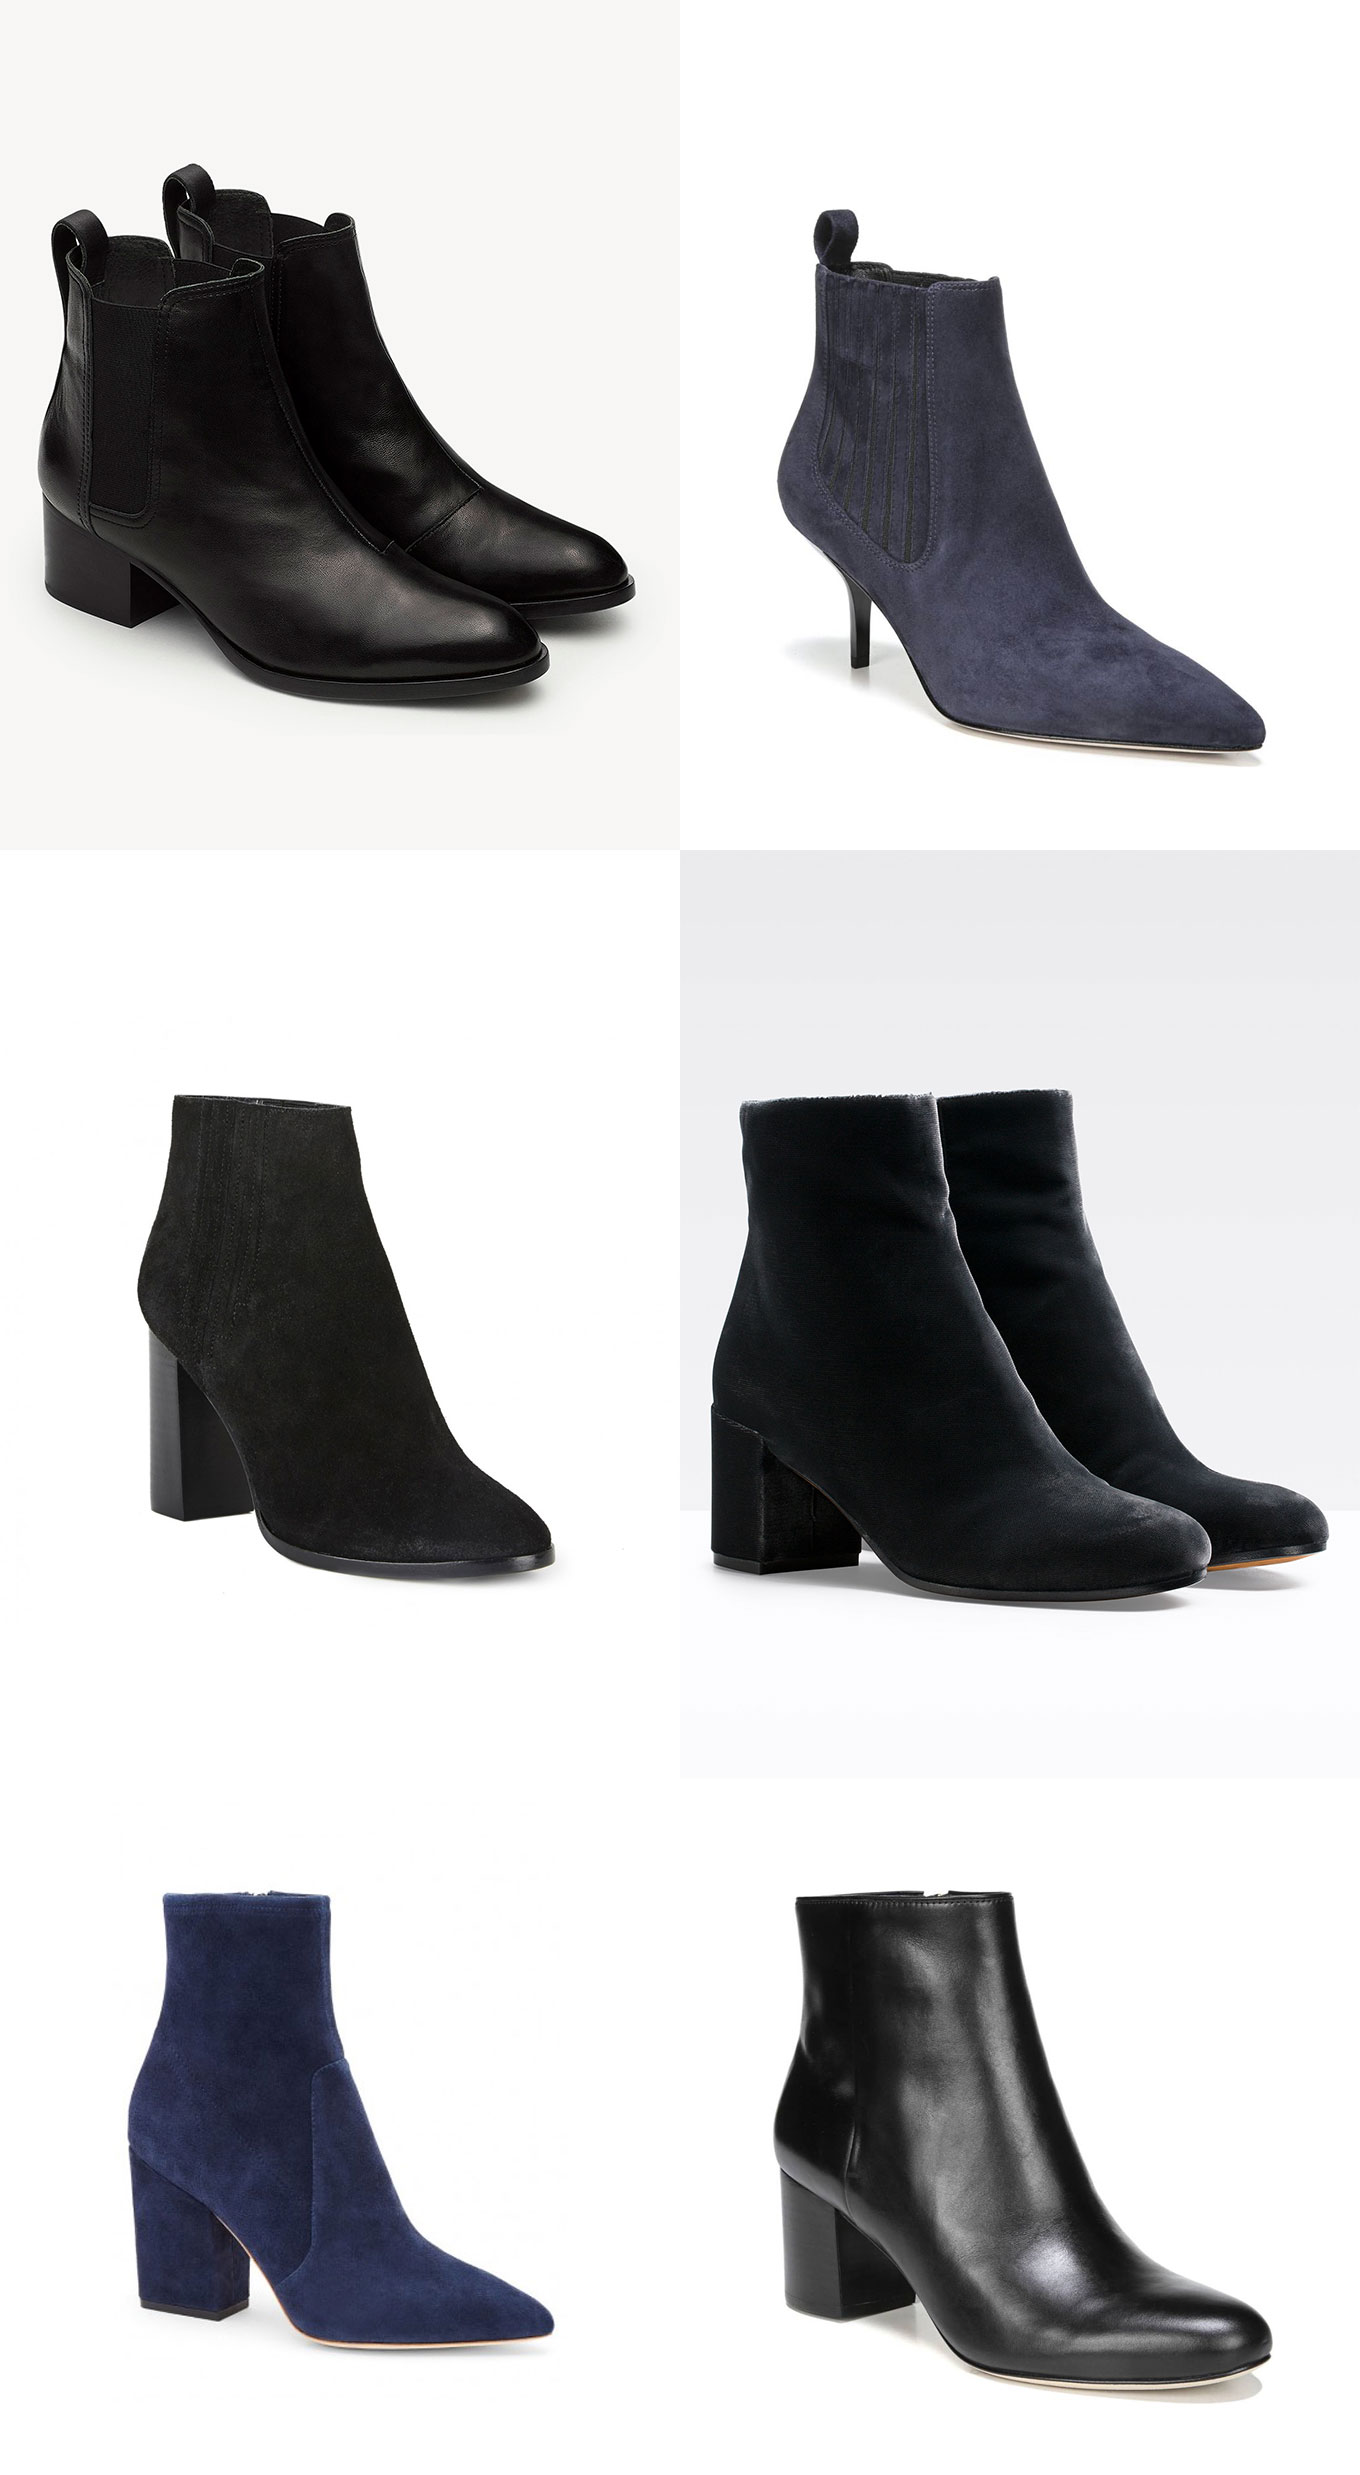 Ridgely Brode finds 6 pairs of booties under $500 plus many more that fit the price tag and look great, take a look on Ridgely's Radar to see them.